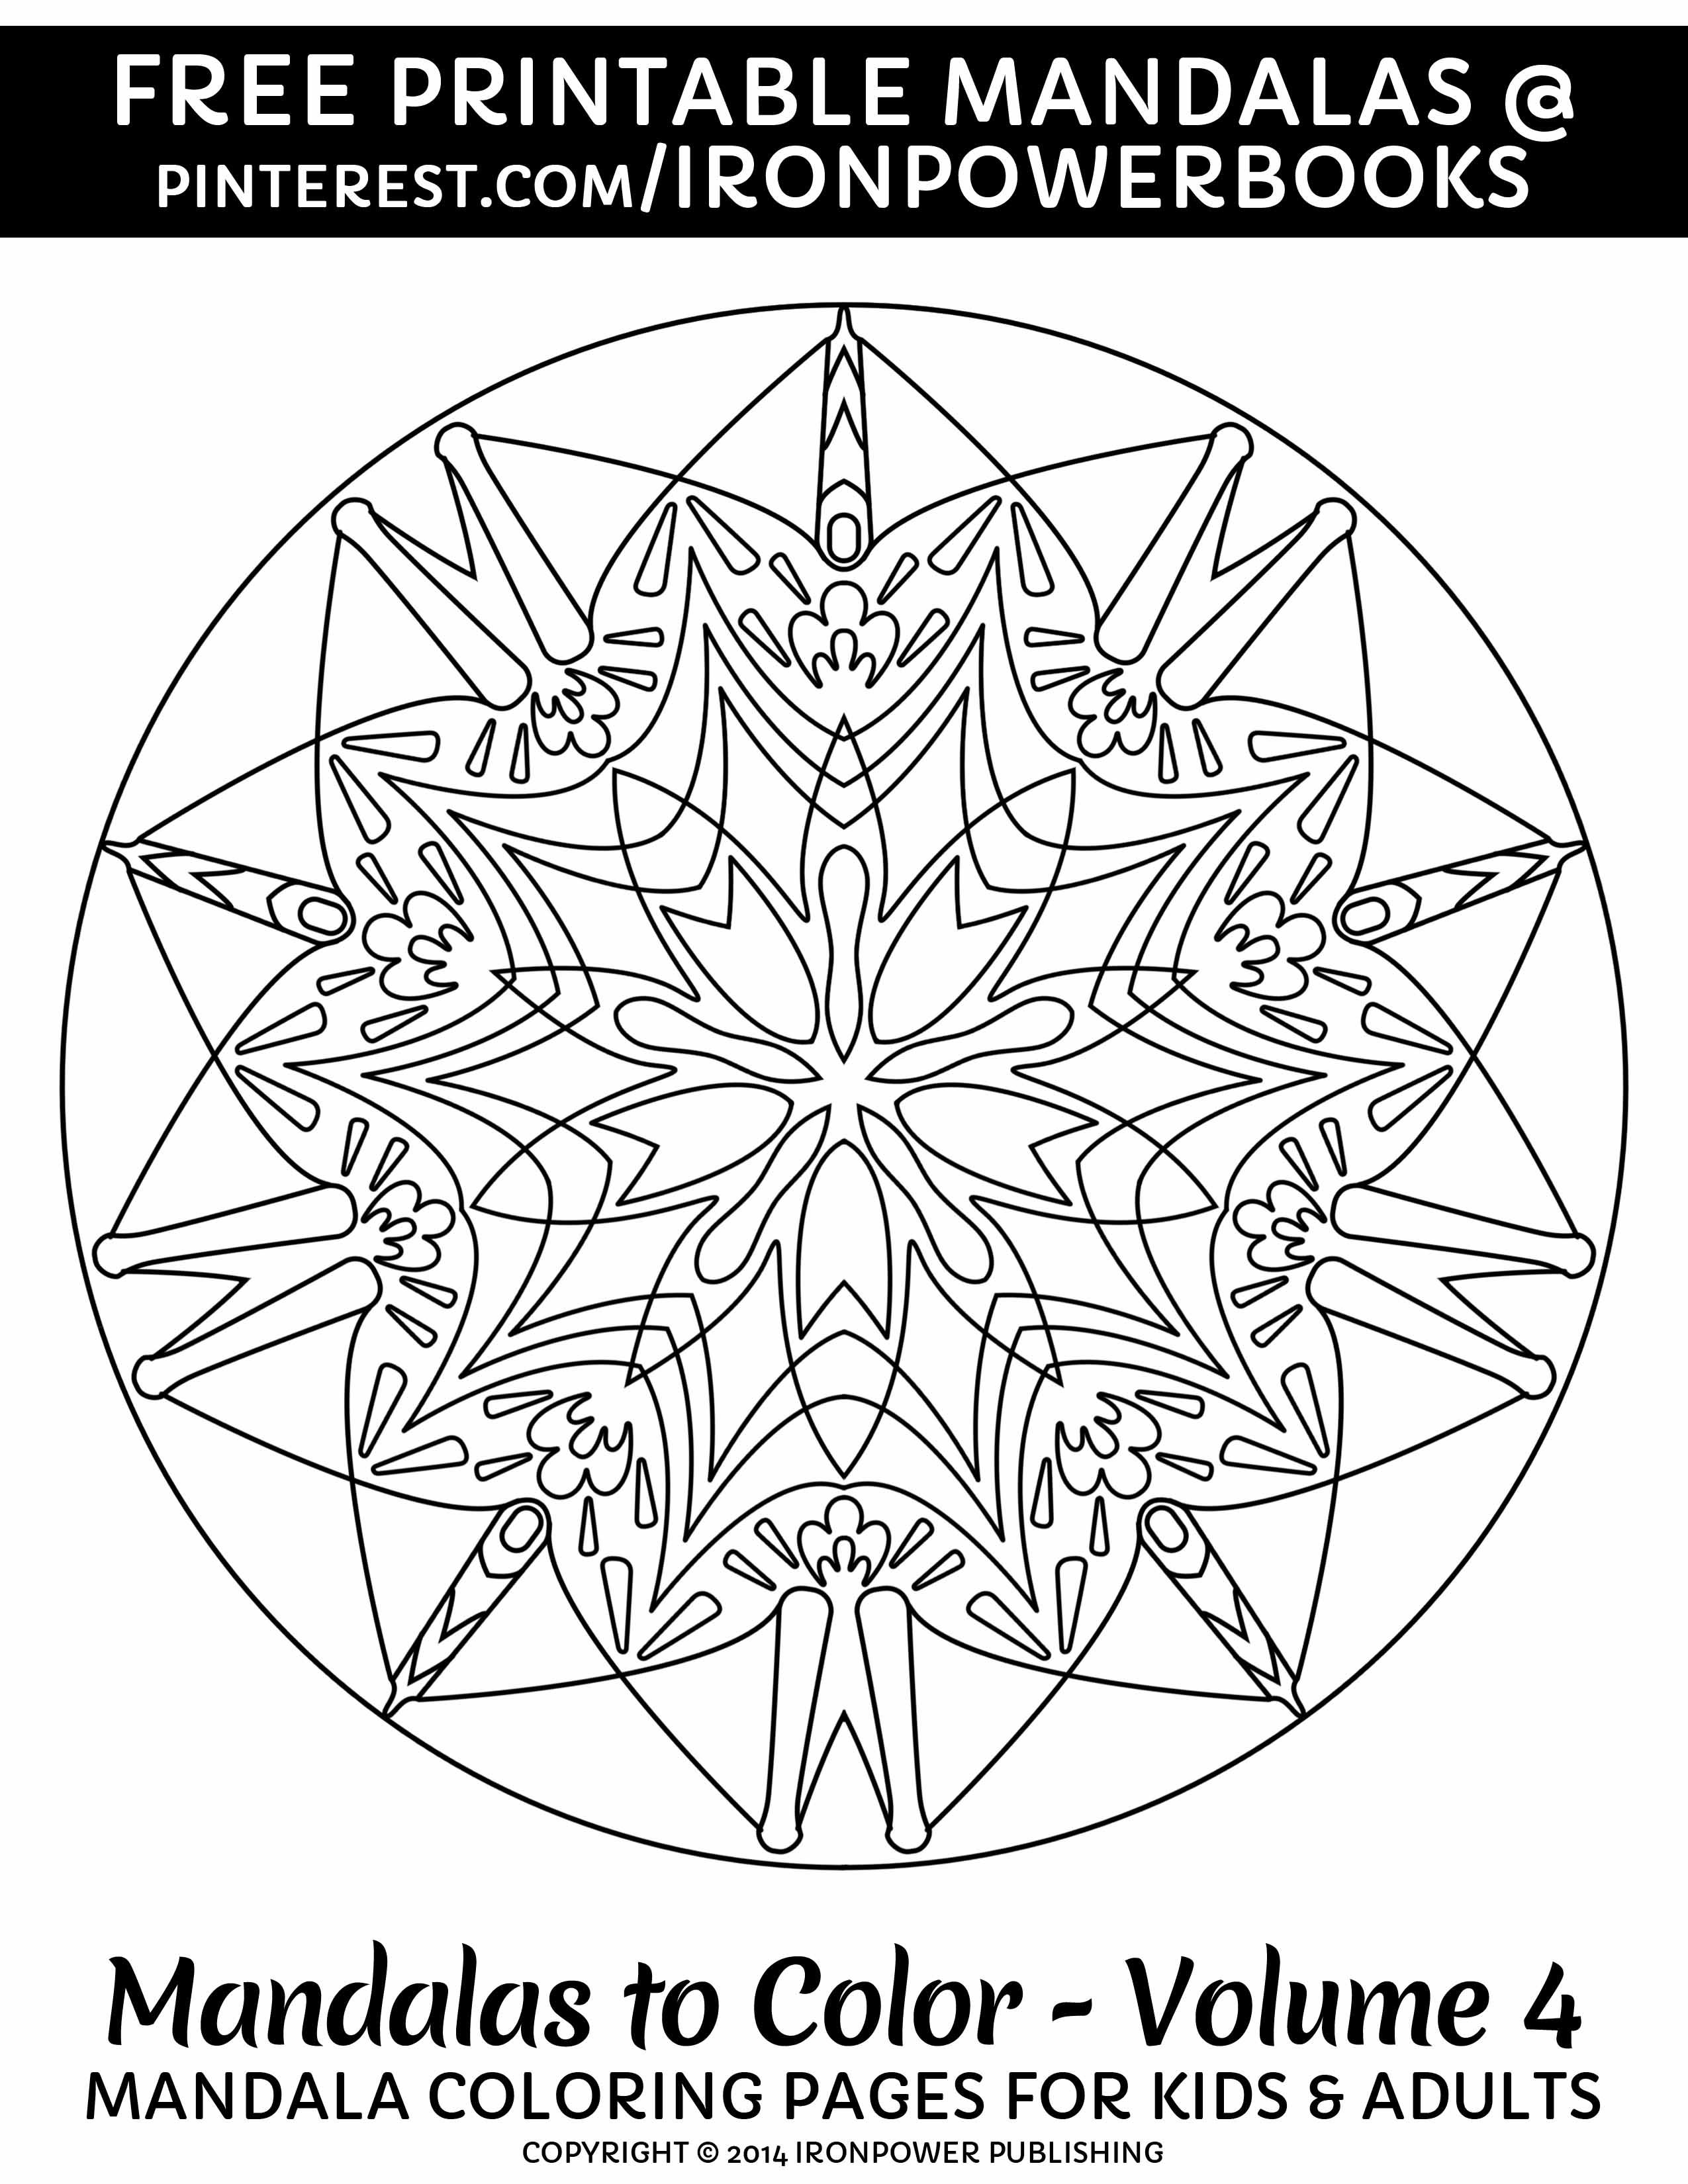 Free Printable Mandala Coloring Pages For Stress Relief Or